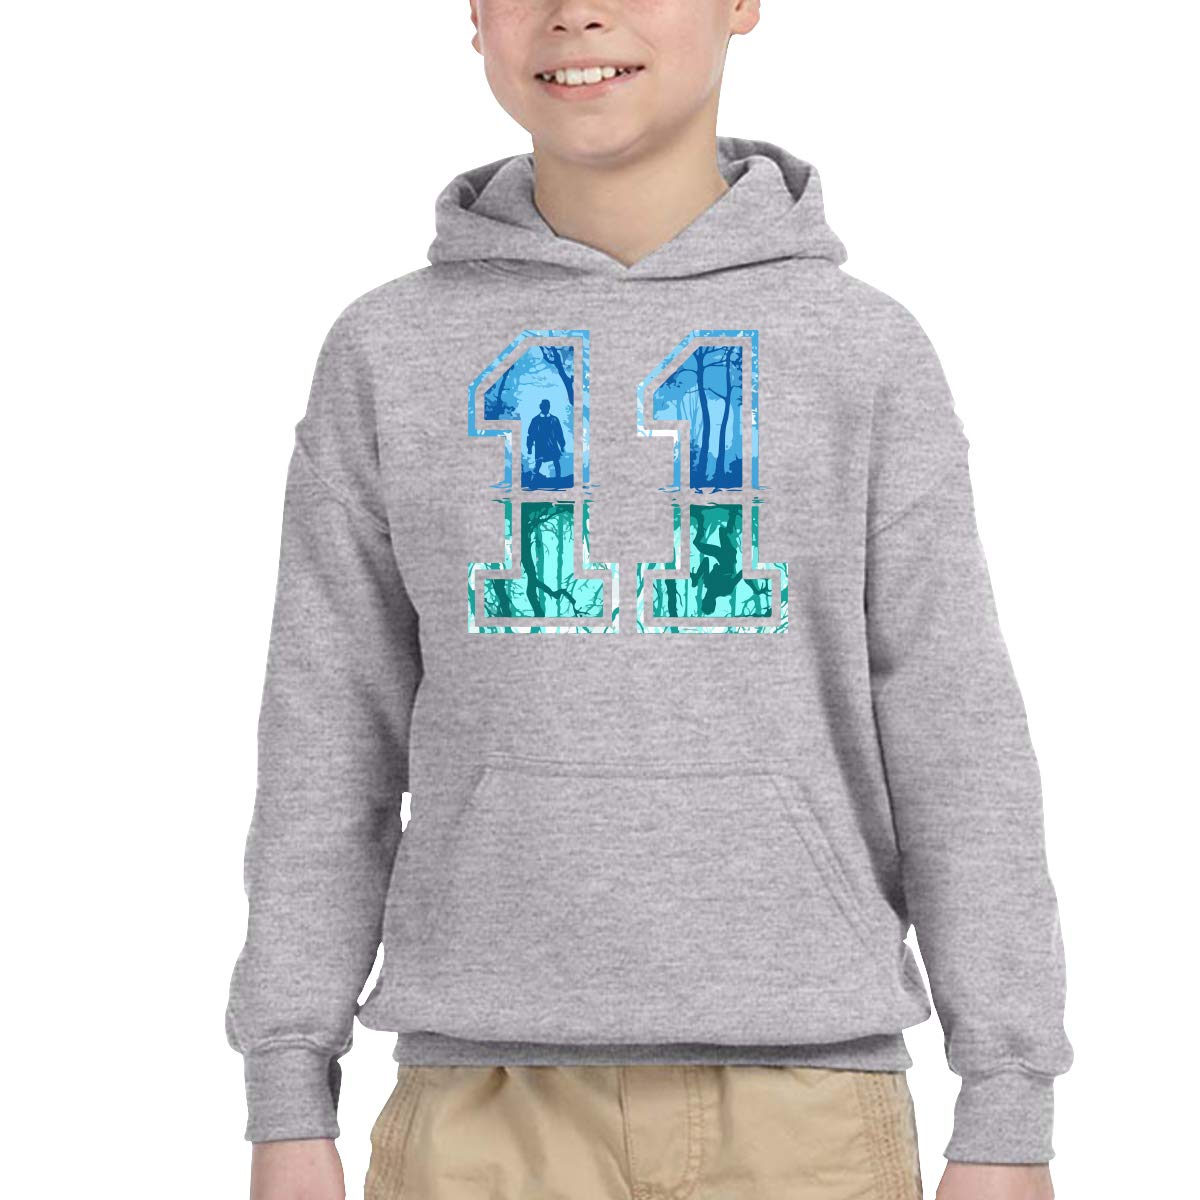 WER7 Kids Boys Girls 3D Print Athletic Pullover Fashion Hoodie Hooded Sweatshirts